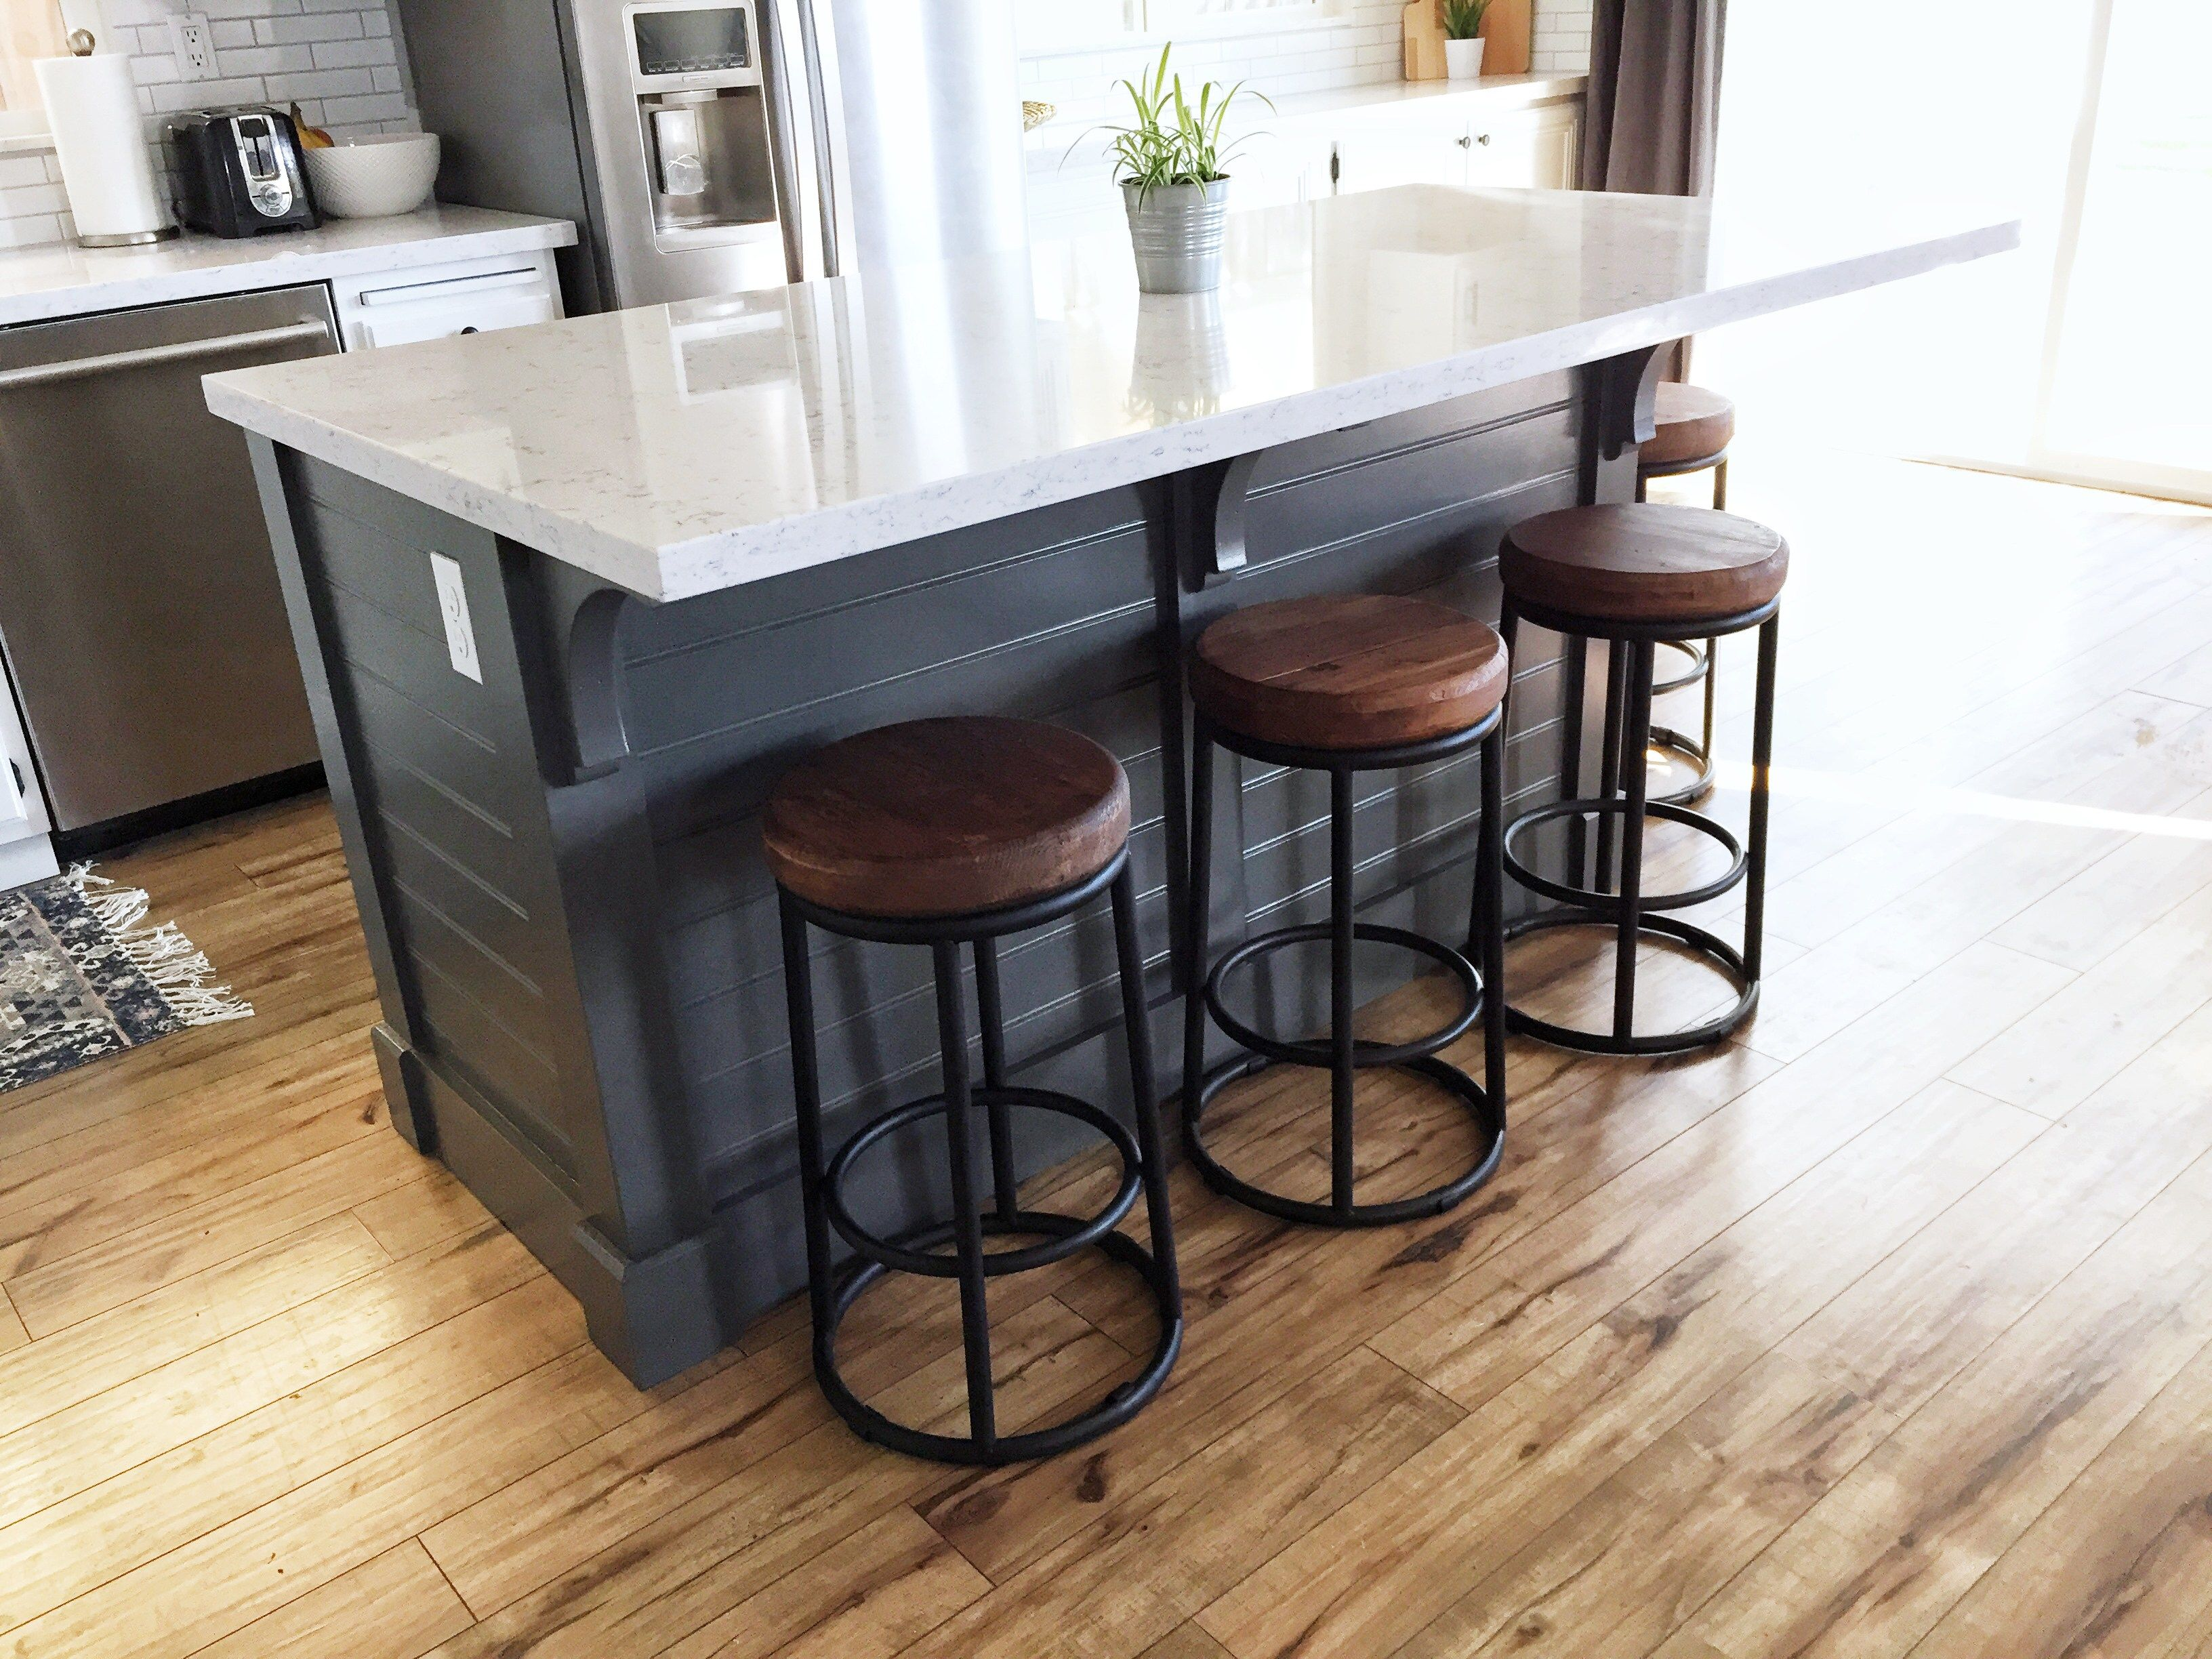 20 Recommended Small Kitchen Island Ideas on a Budget | Cocina ...